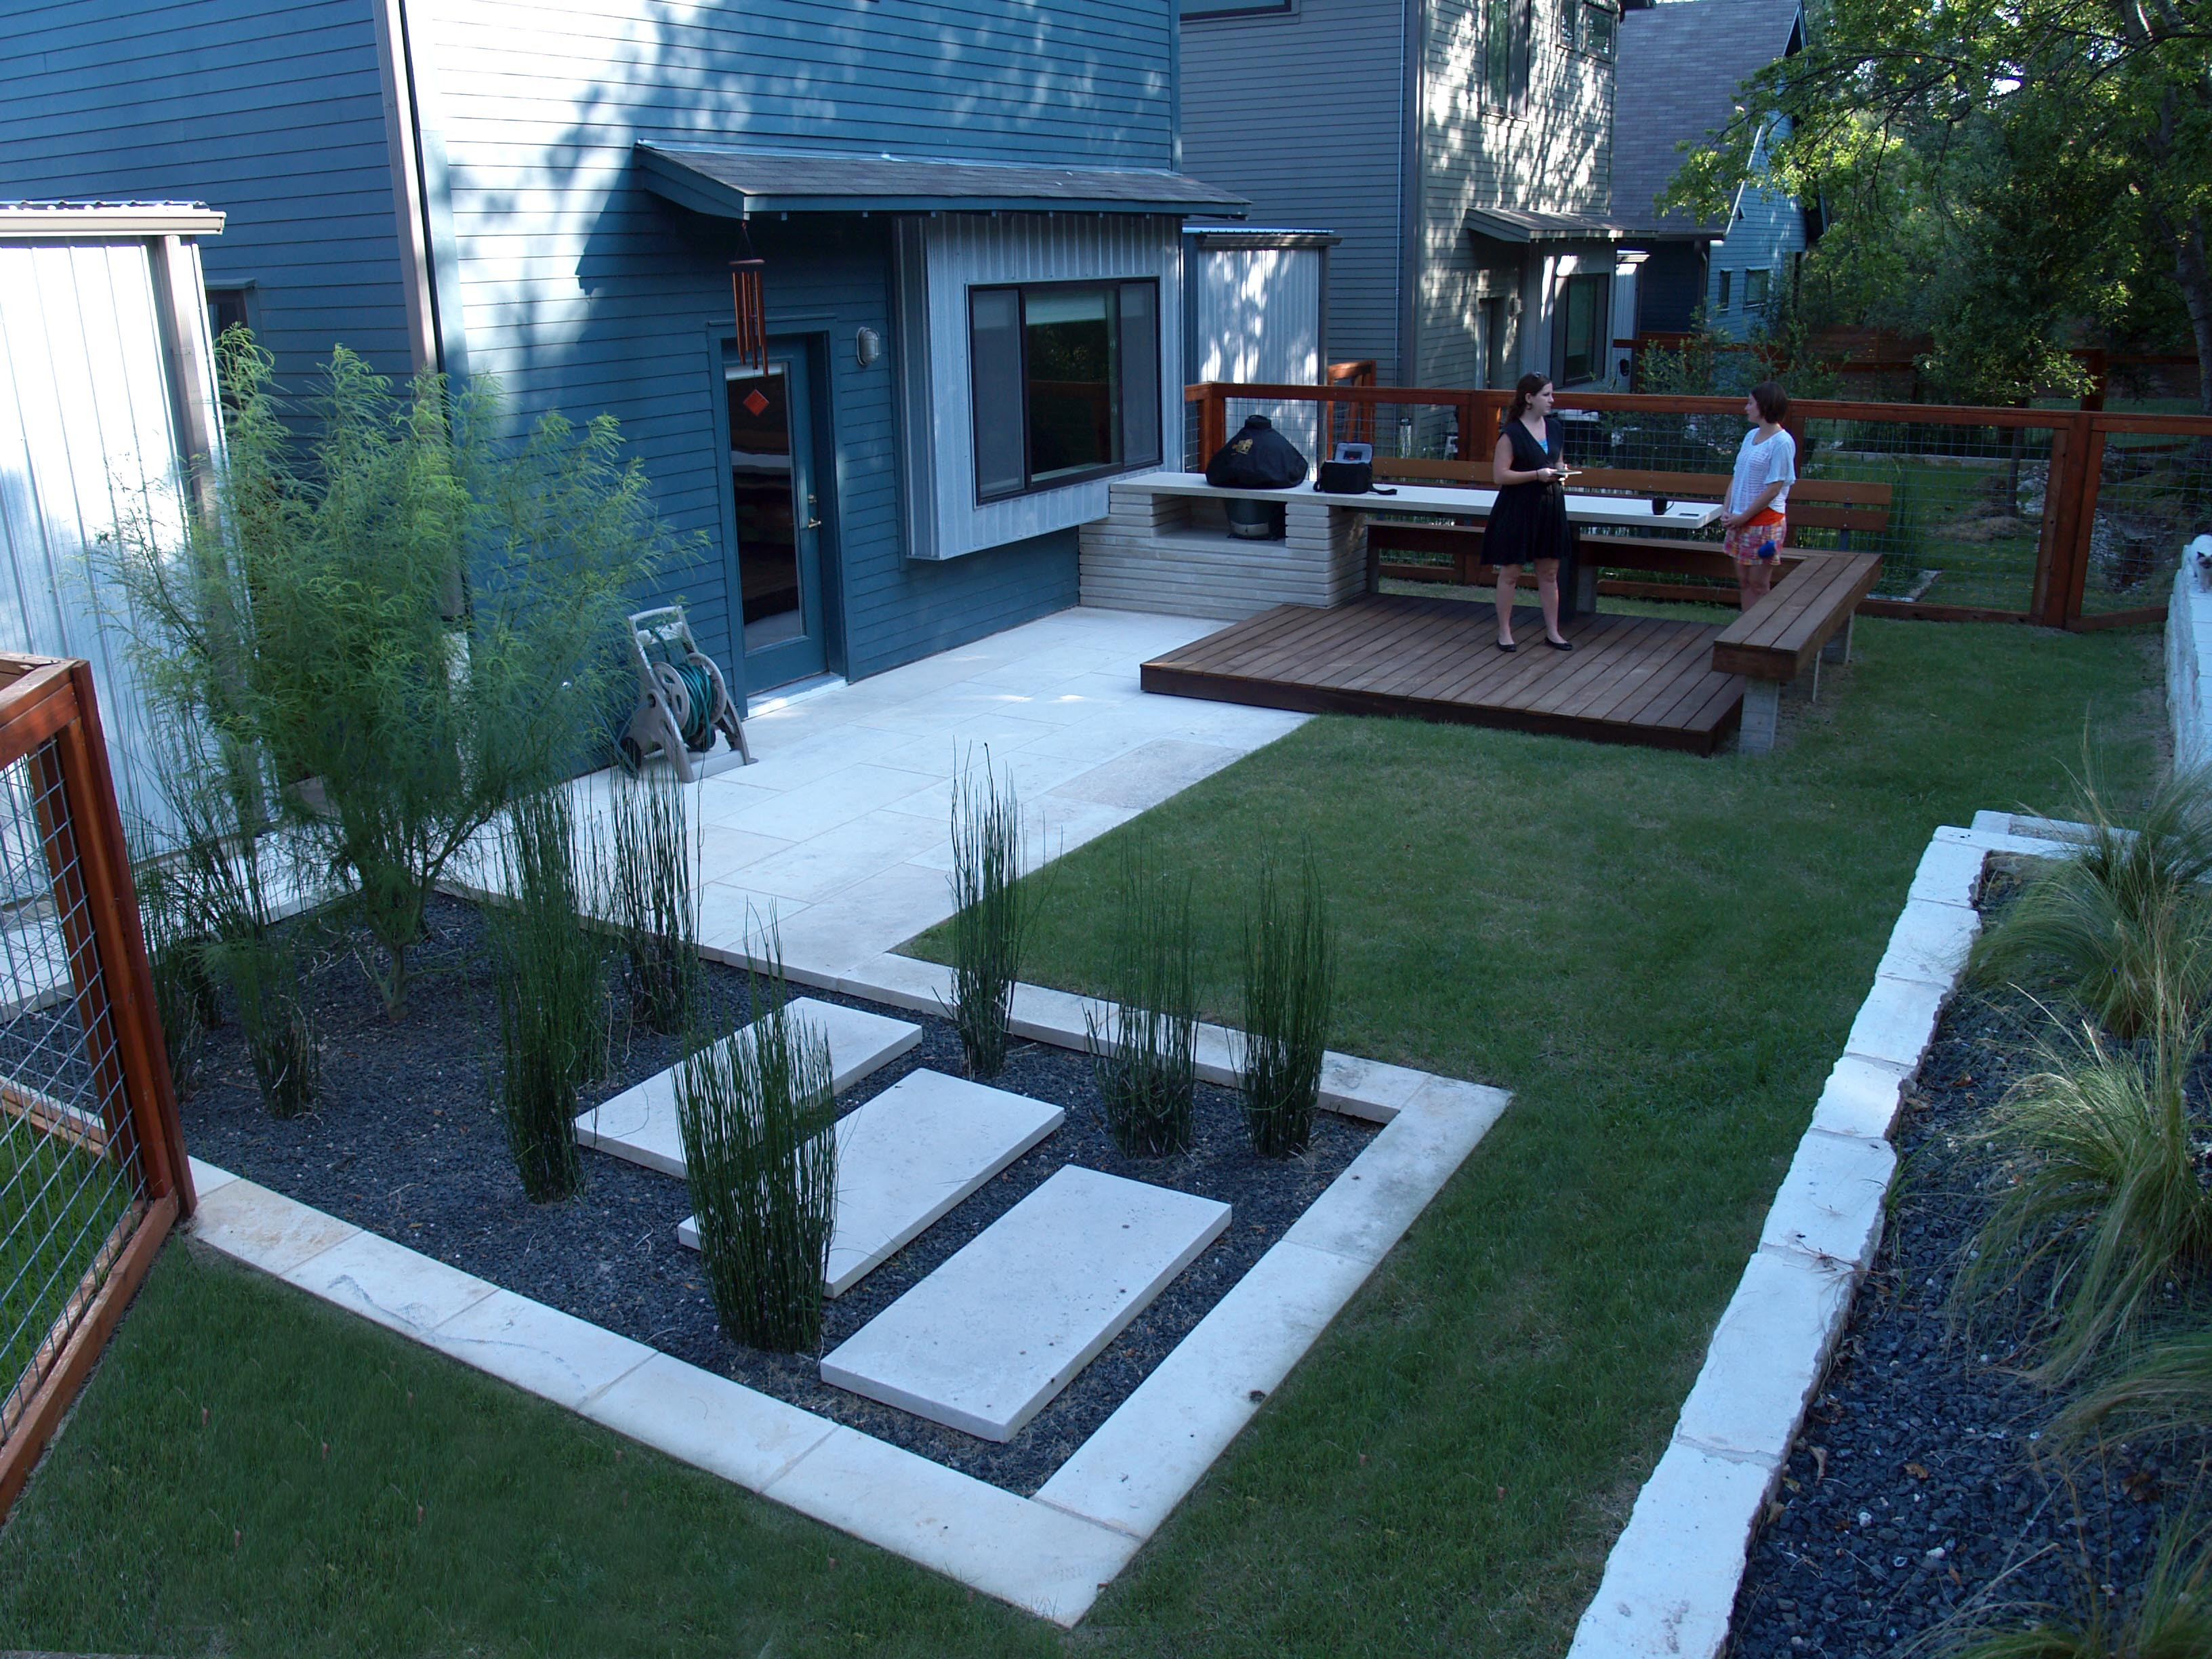 Best ideas about Modern Backyard Ideas . Save or Pin modern small backyard design with kitchen dining and Now.